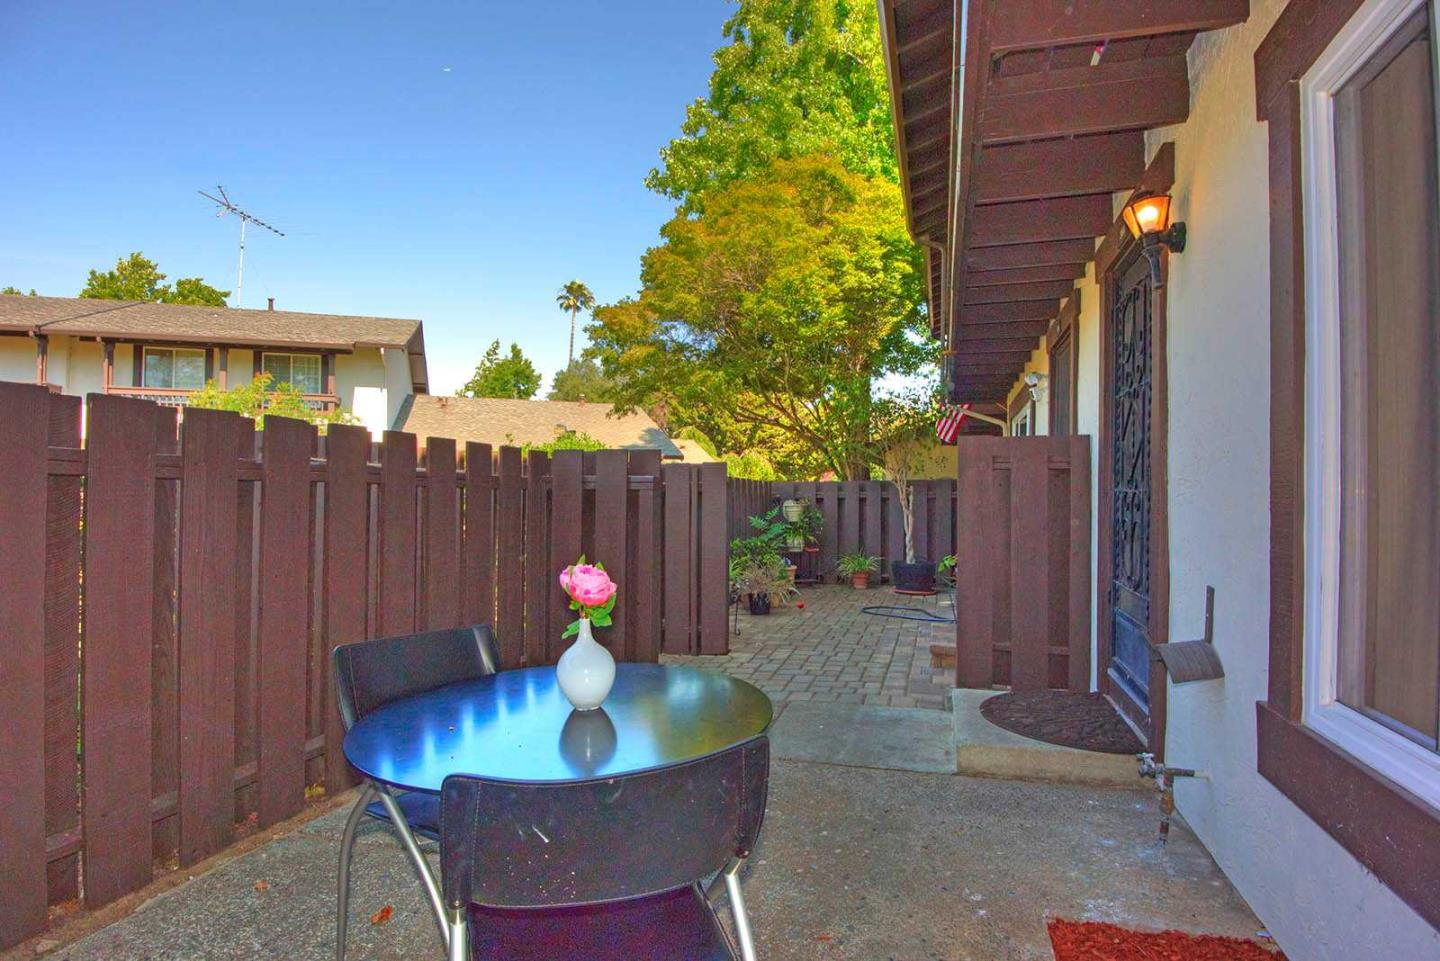 344 Goleta Terrace Fremont, CA 94536 - MLS #: ML81722232